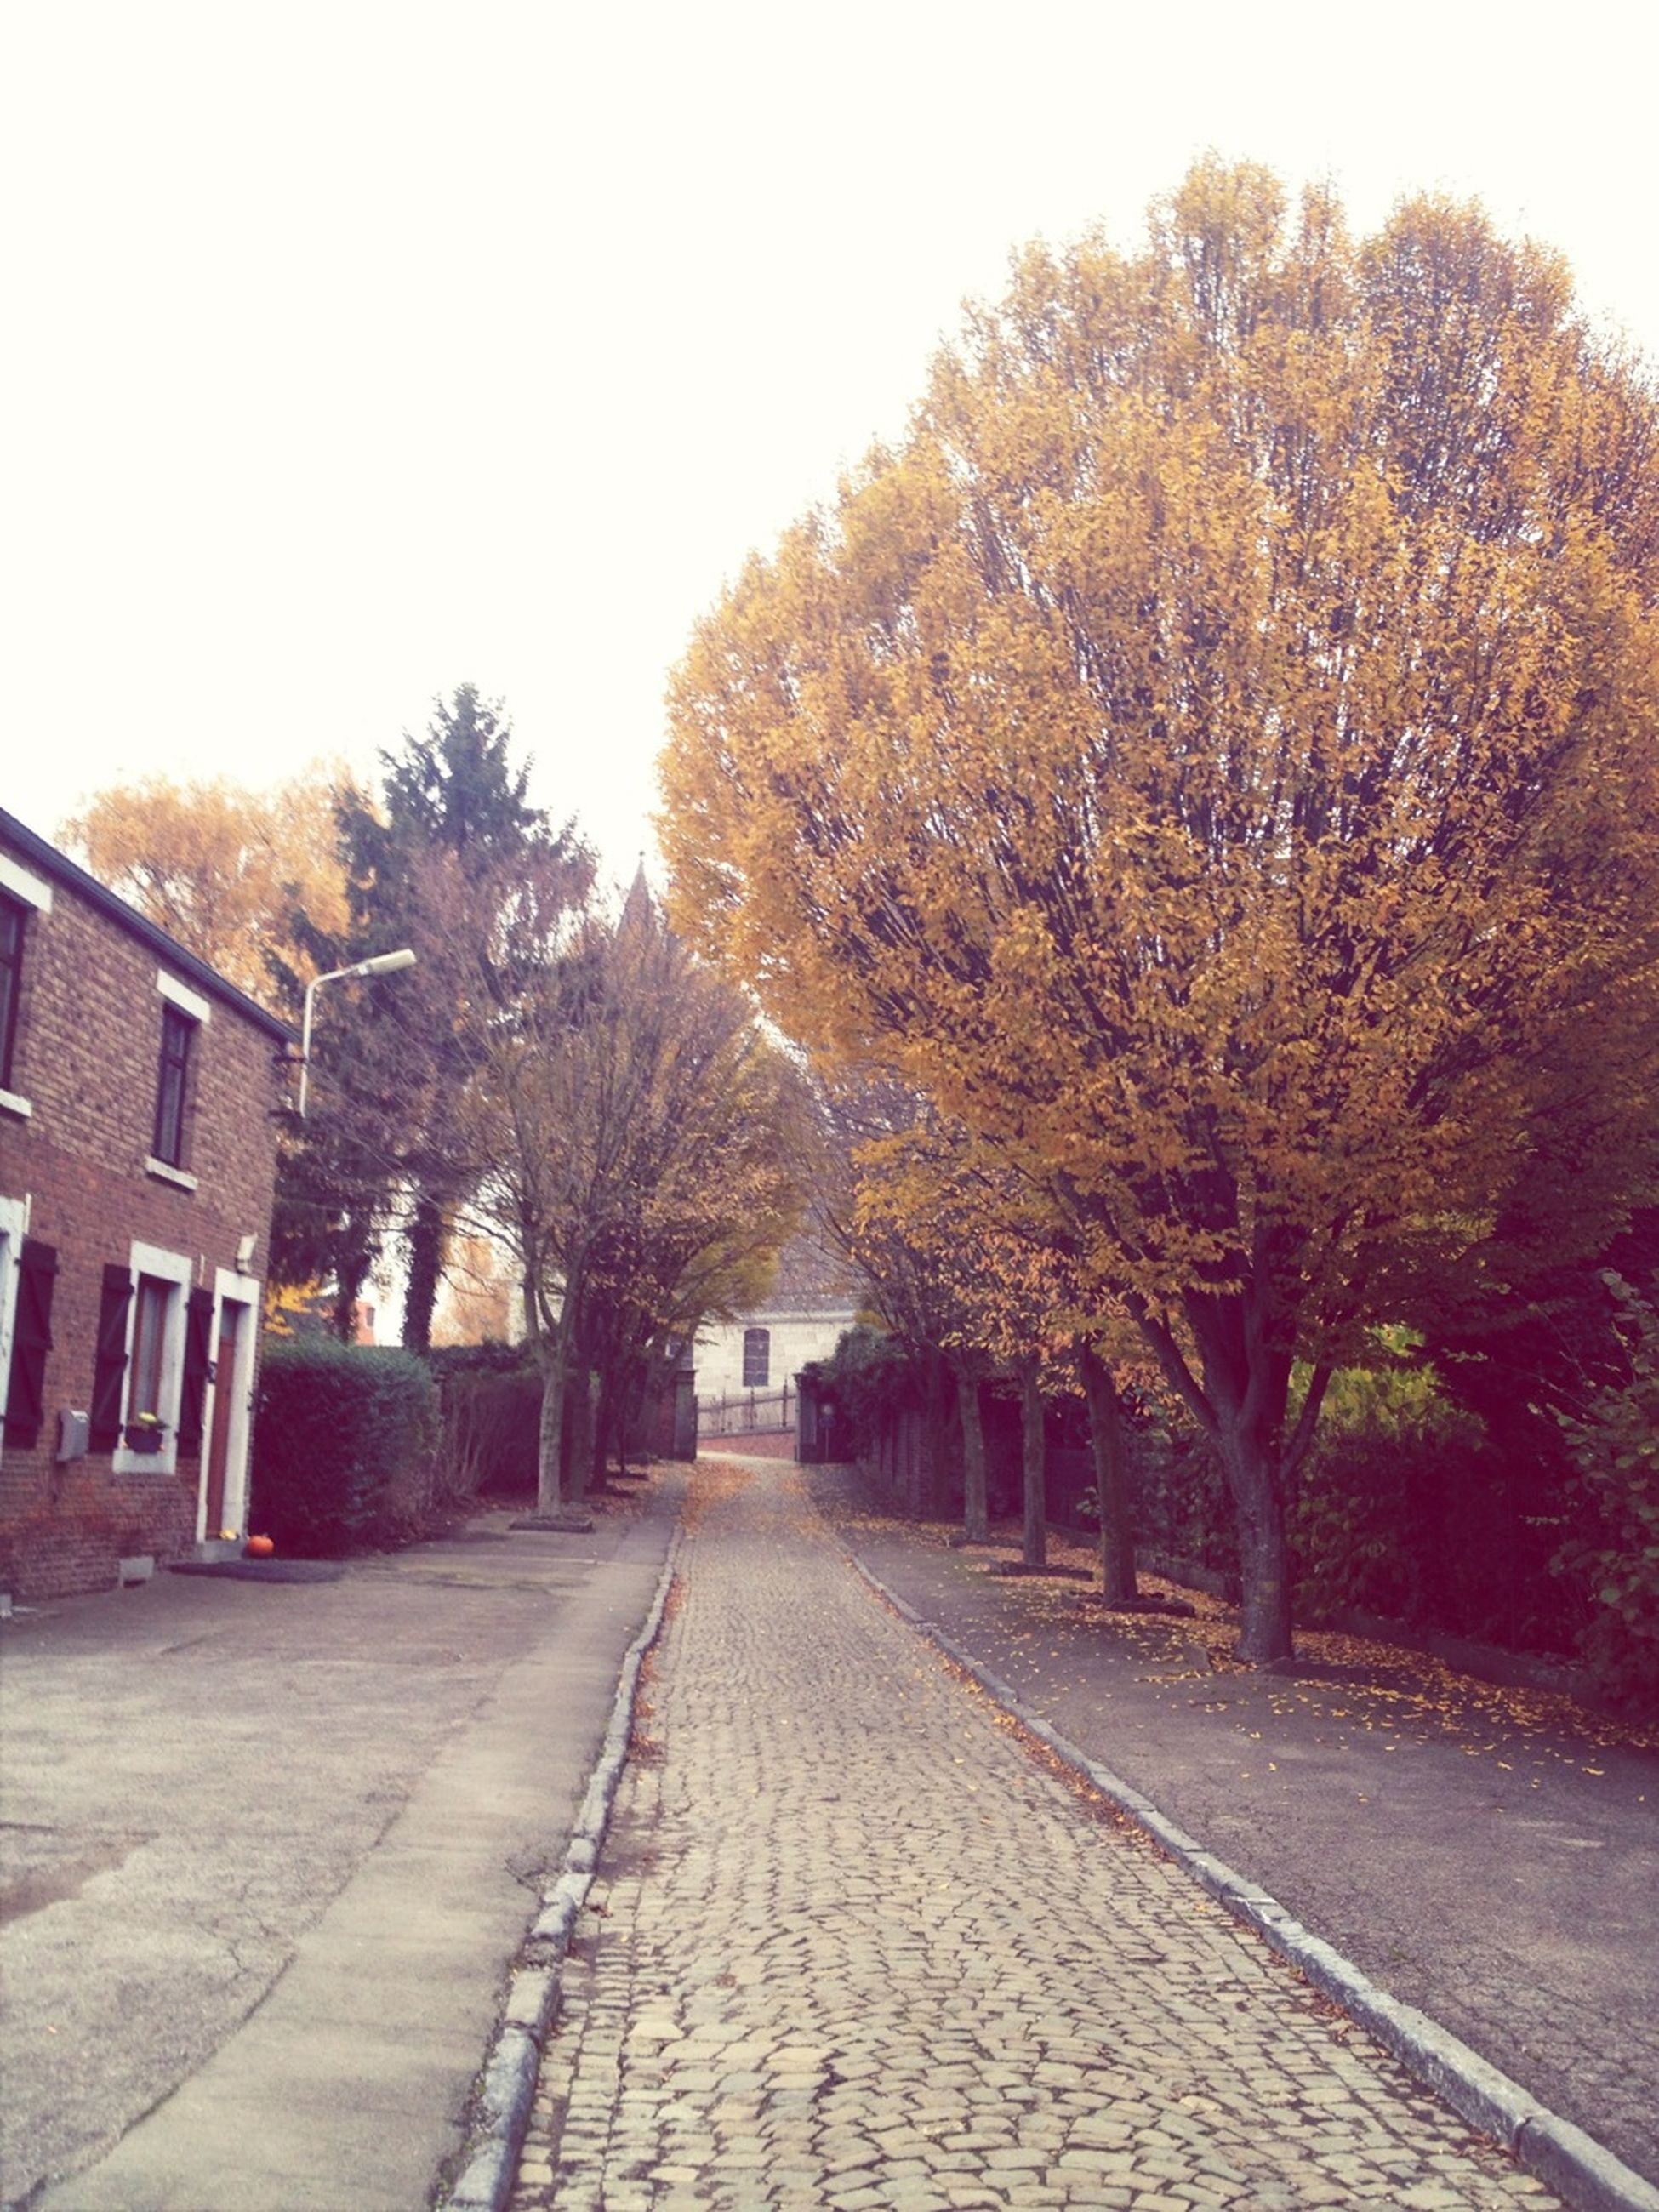 tree, the way forward, building exterior, architecture, built structure, street, transportation, clear sky, diminishing perspective, road, autumn, sky, house, footpath, day, bare tree, vanishing point, season, outdoors, cobblestone